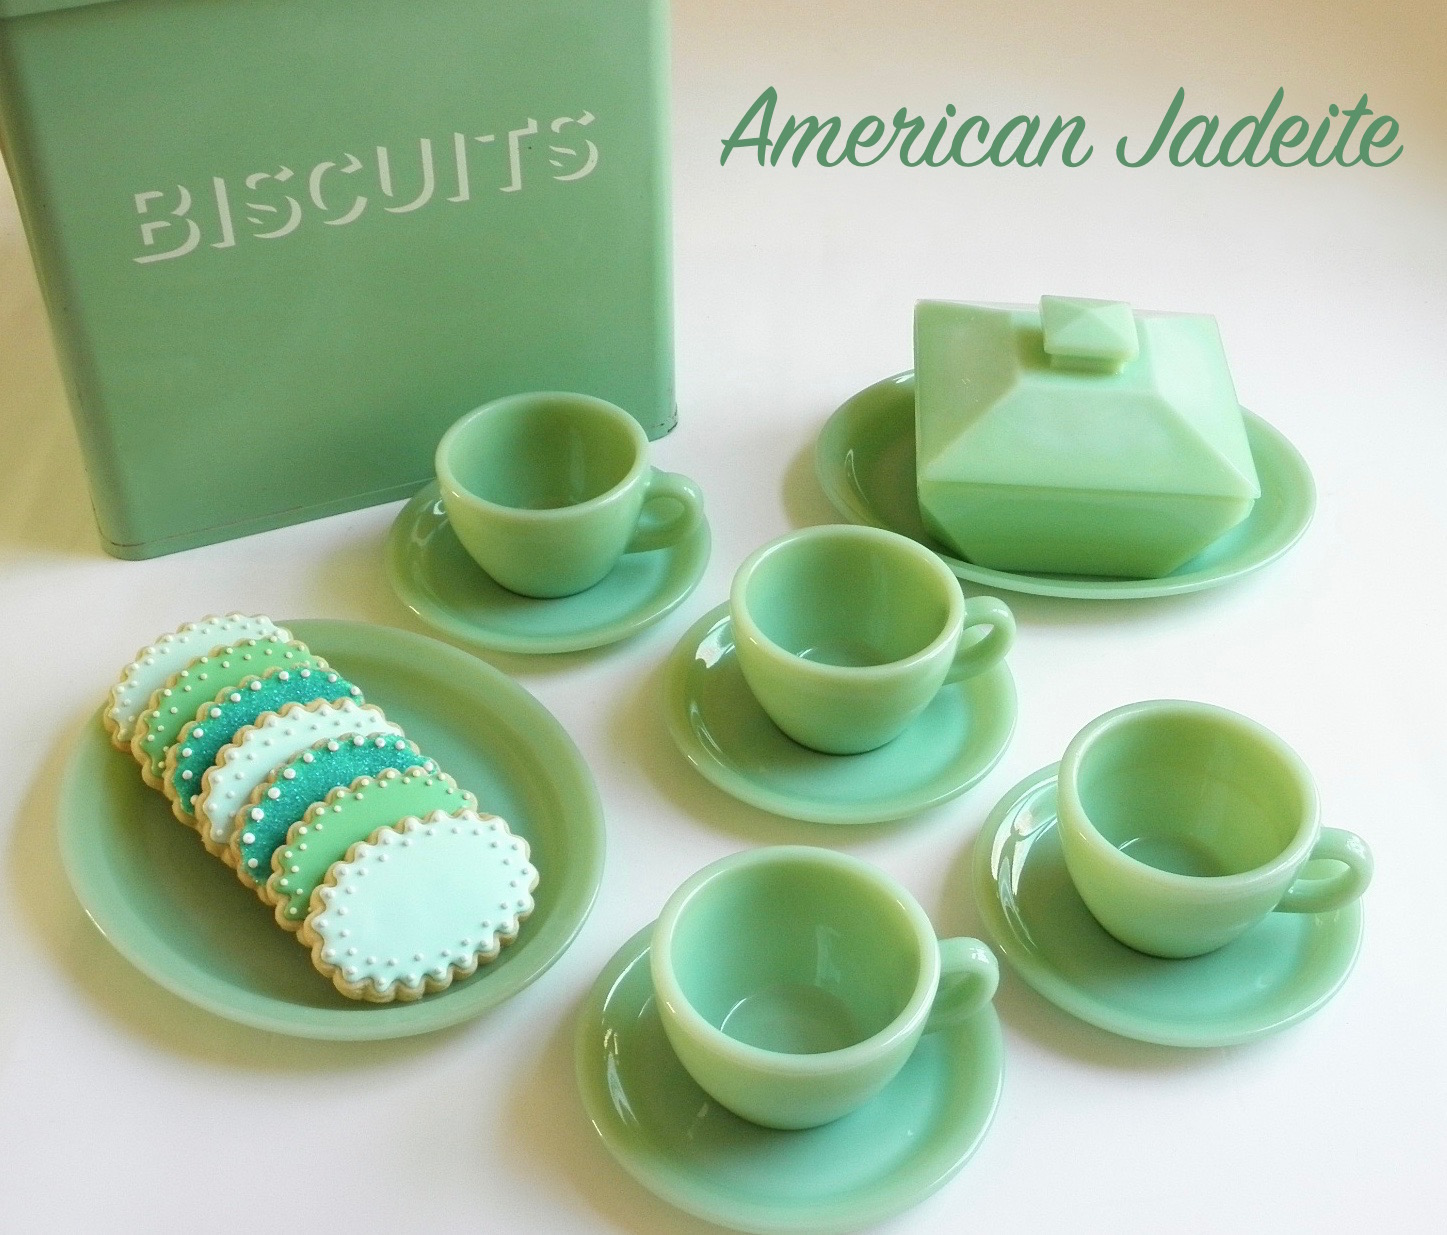 American Jadeite (Facebook Group)